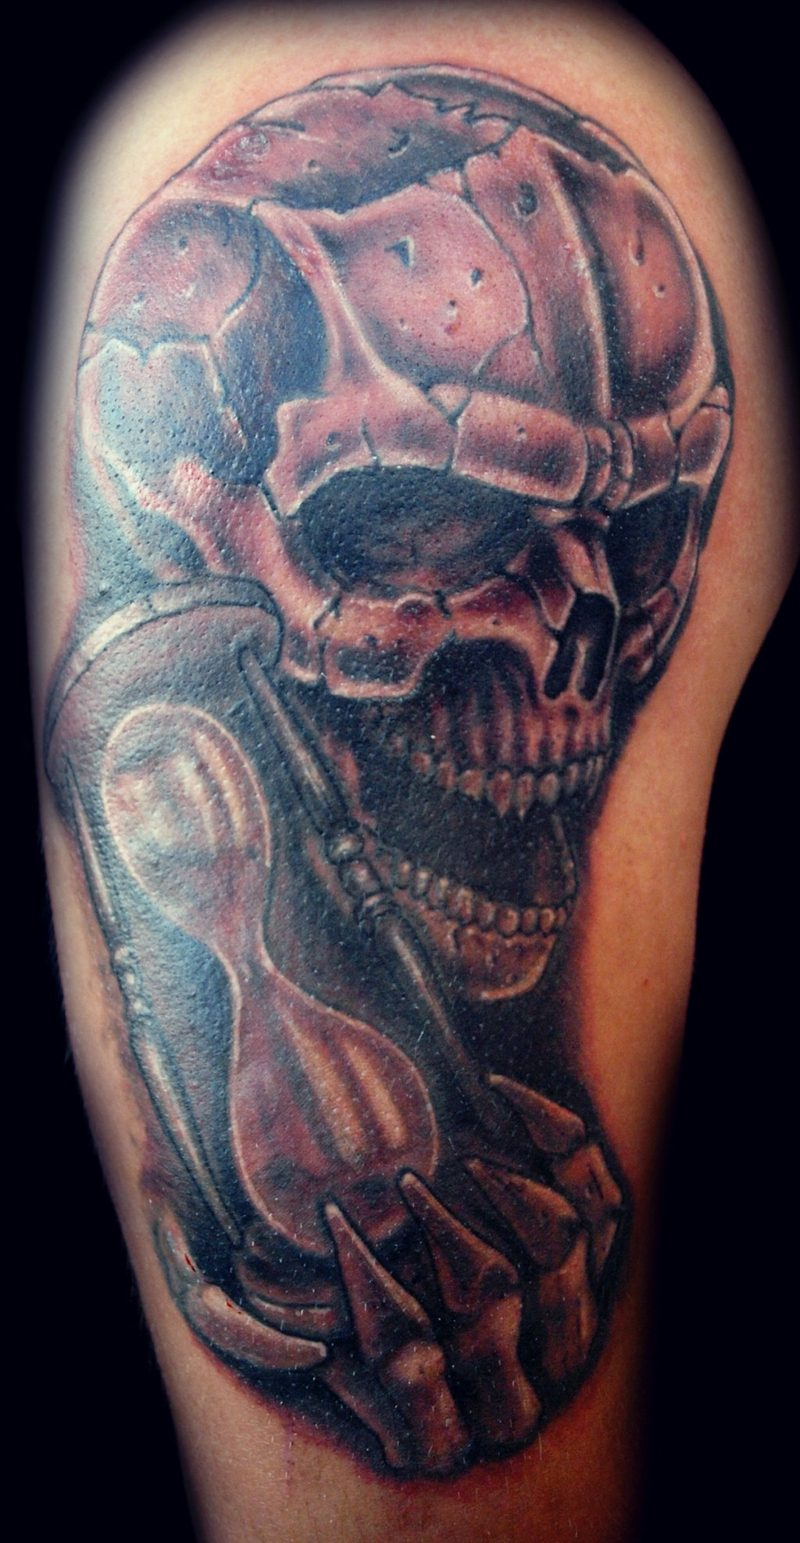 Sanduhr Tattoo skull and hourglass